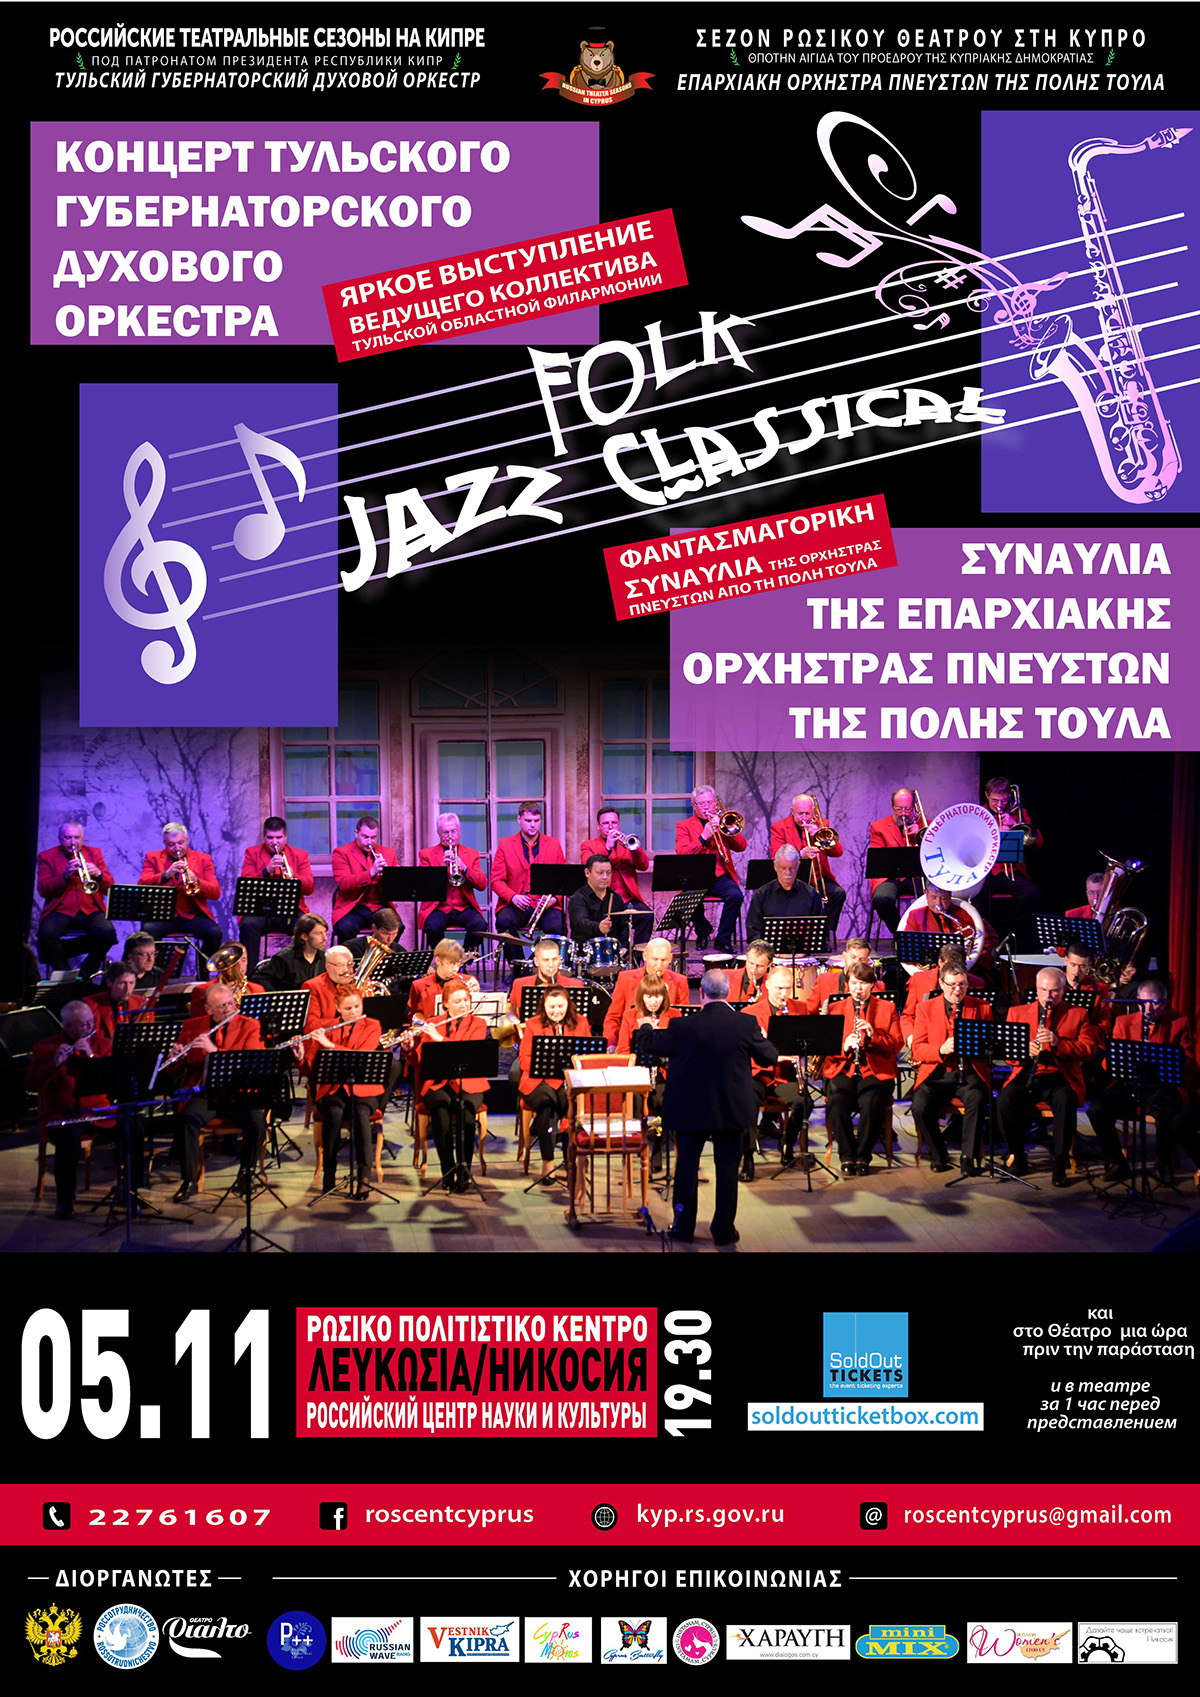 TULA GOVERNOR'S PHILHARMONIC WIND ORCHESTRA